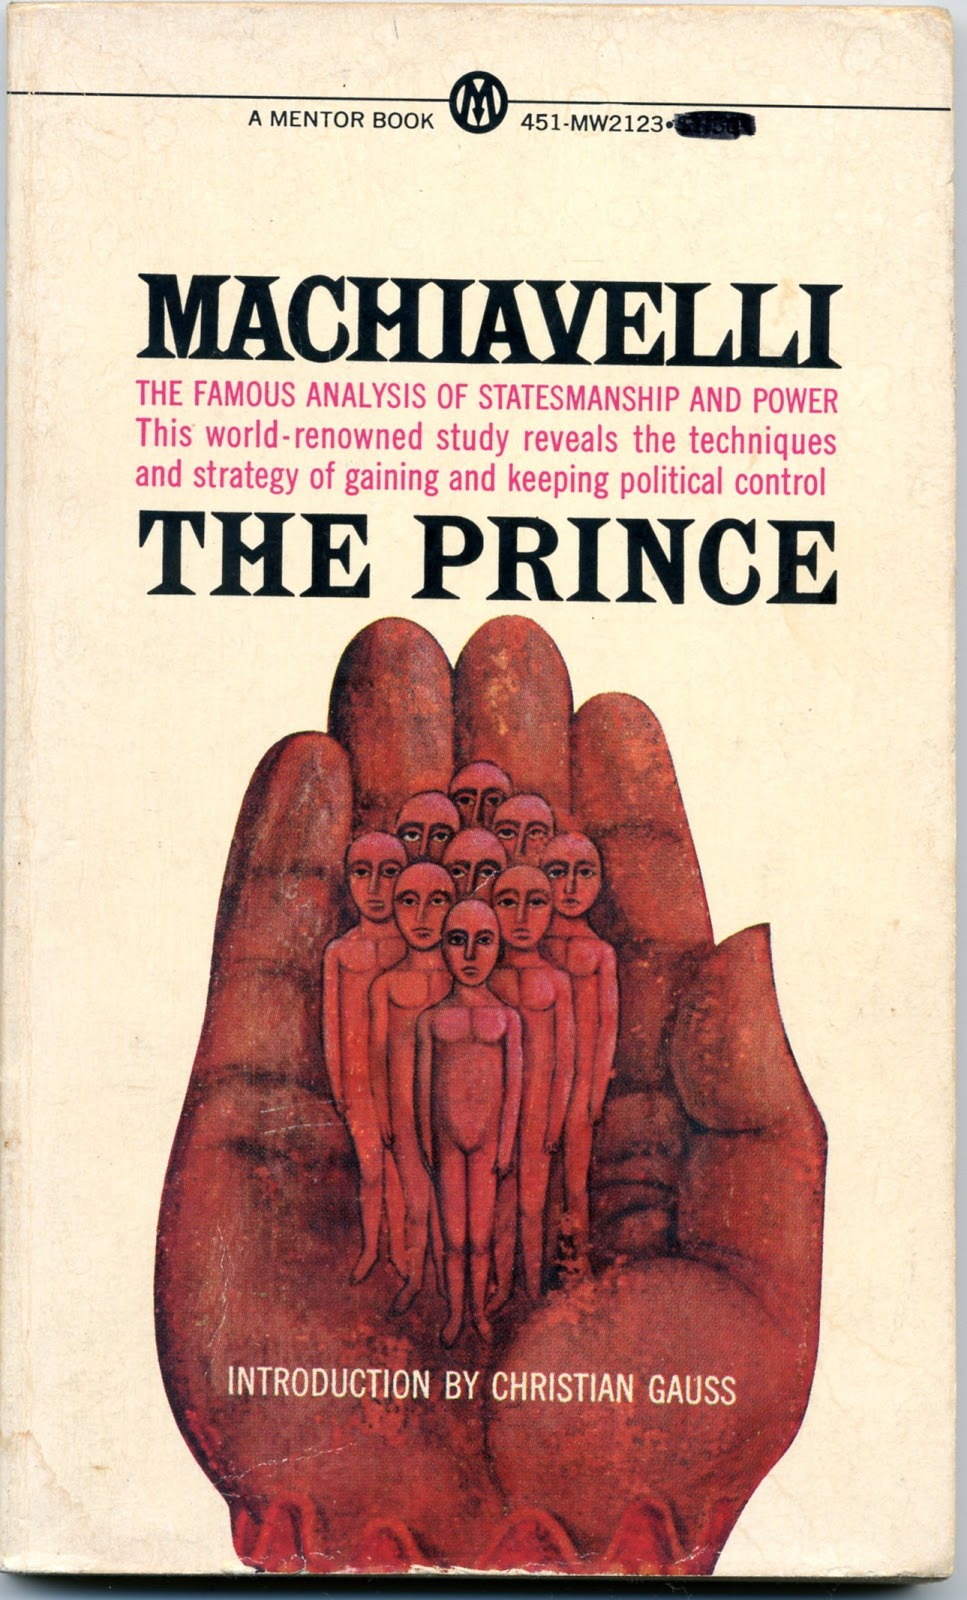 machiavelli the prince Unabridged version of the prince, by niccolo machiavelli and translated by n h thomson, offered here for chump change from 1513, the prince is divided into chapters covering ruling power, be it in the office or across continents.